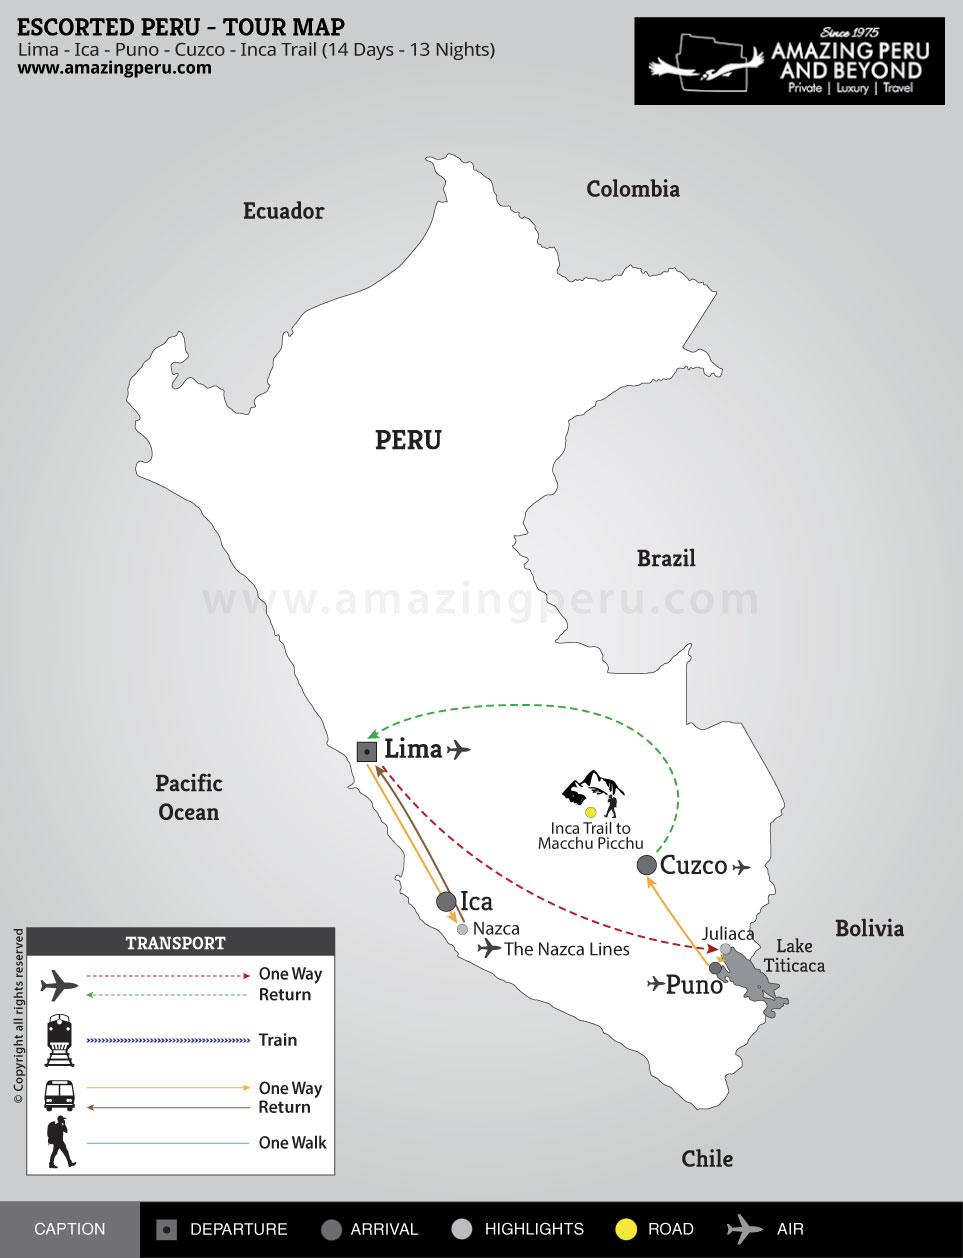 Escorted Peru Tour 5 - 14 days / 13 nights.